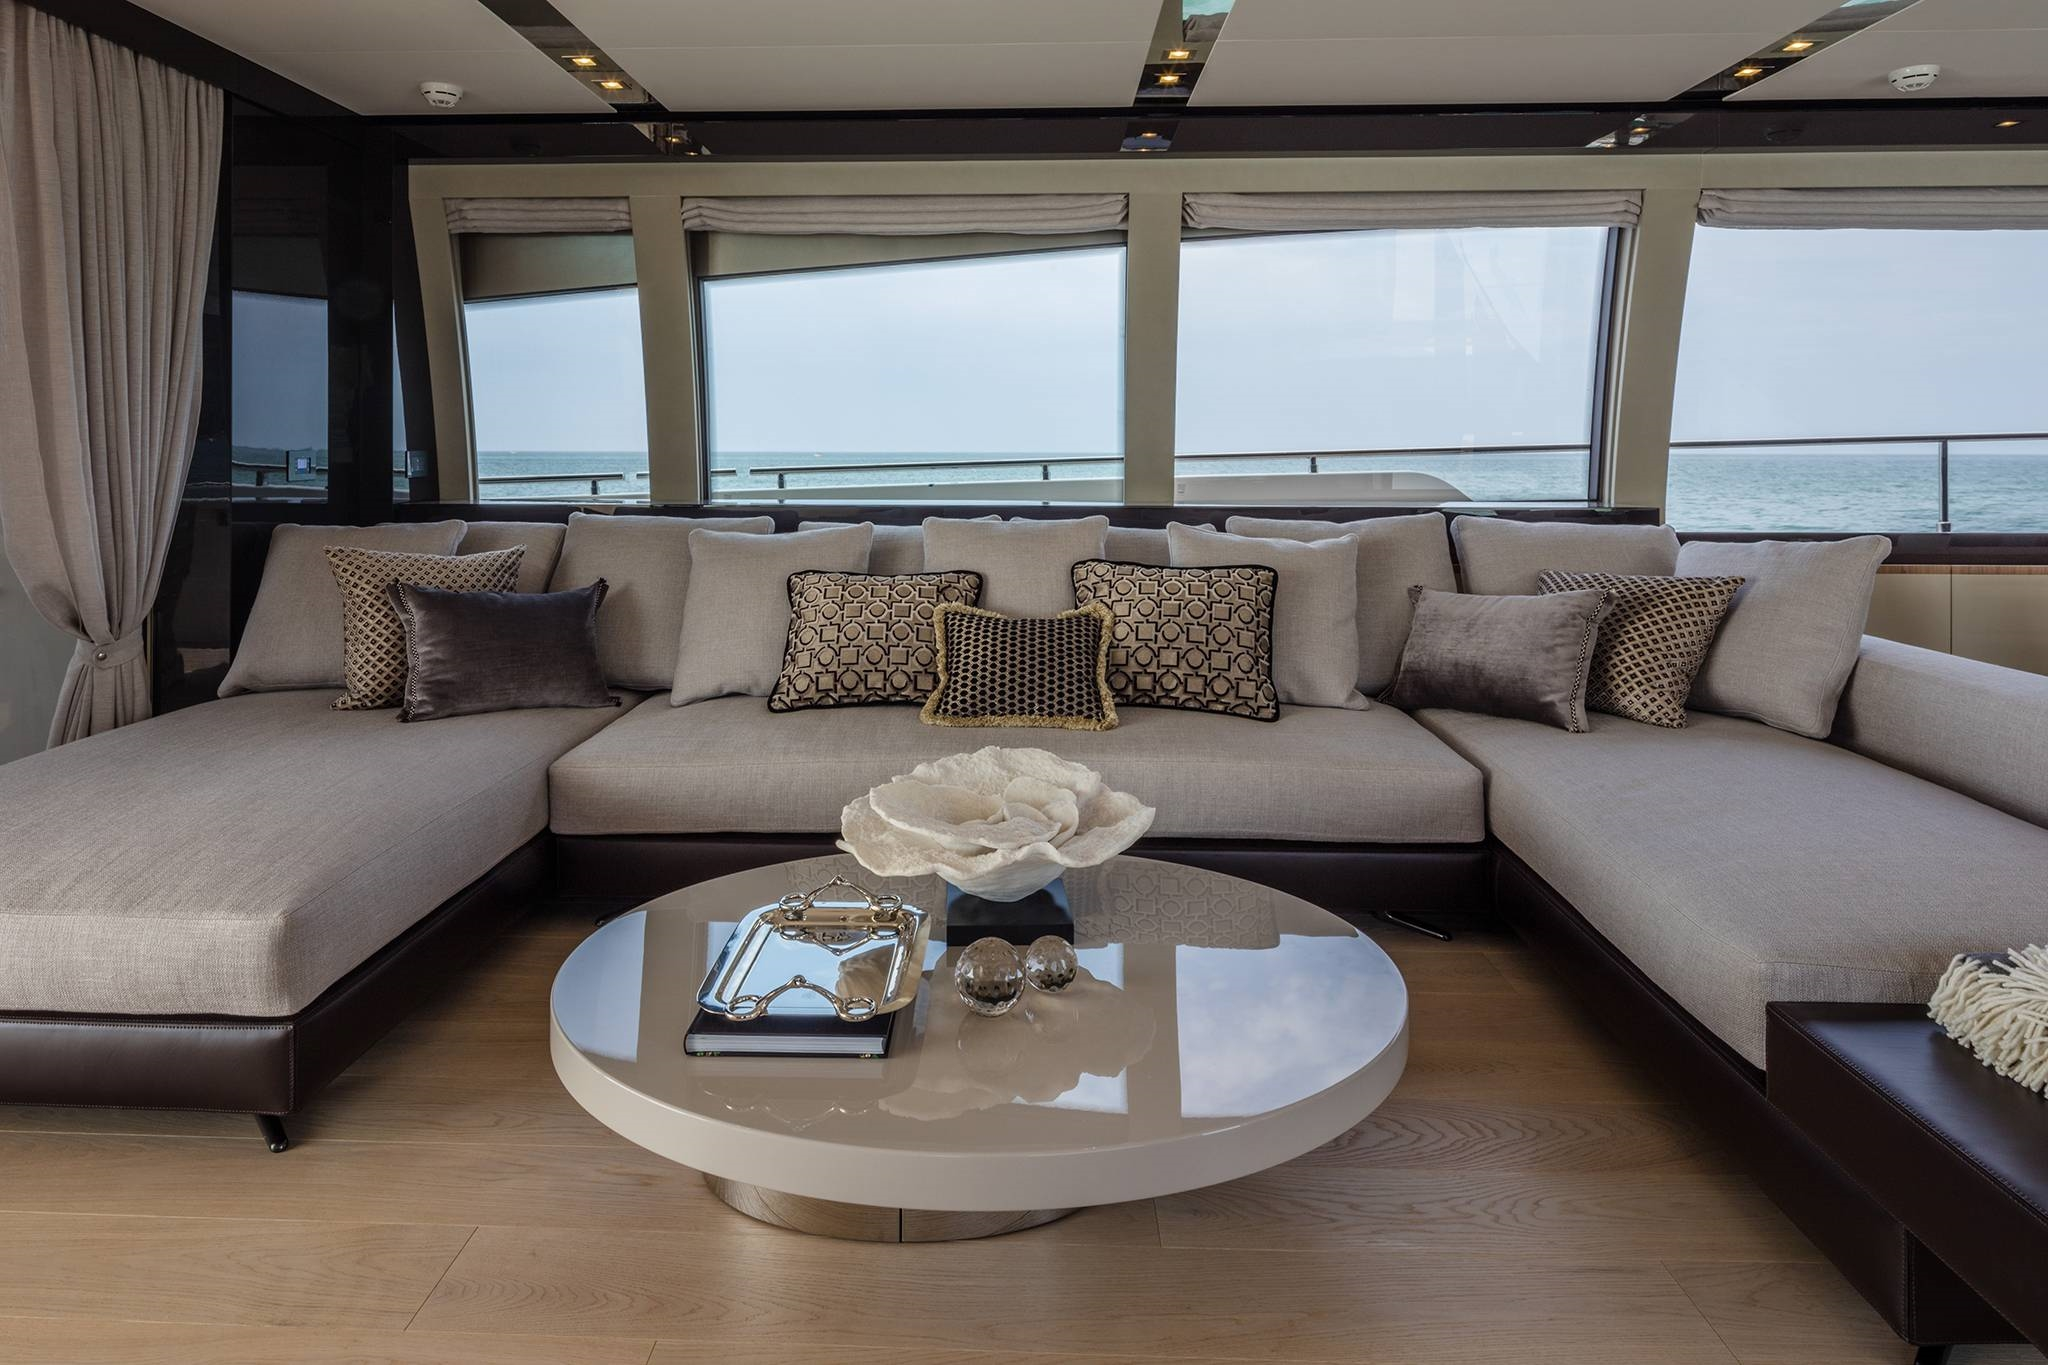 2016 Ferretti Yachts Luxury Salon Sofa